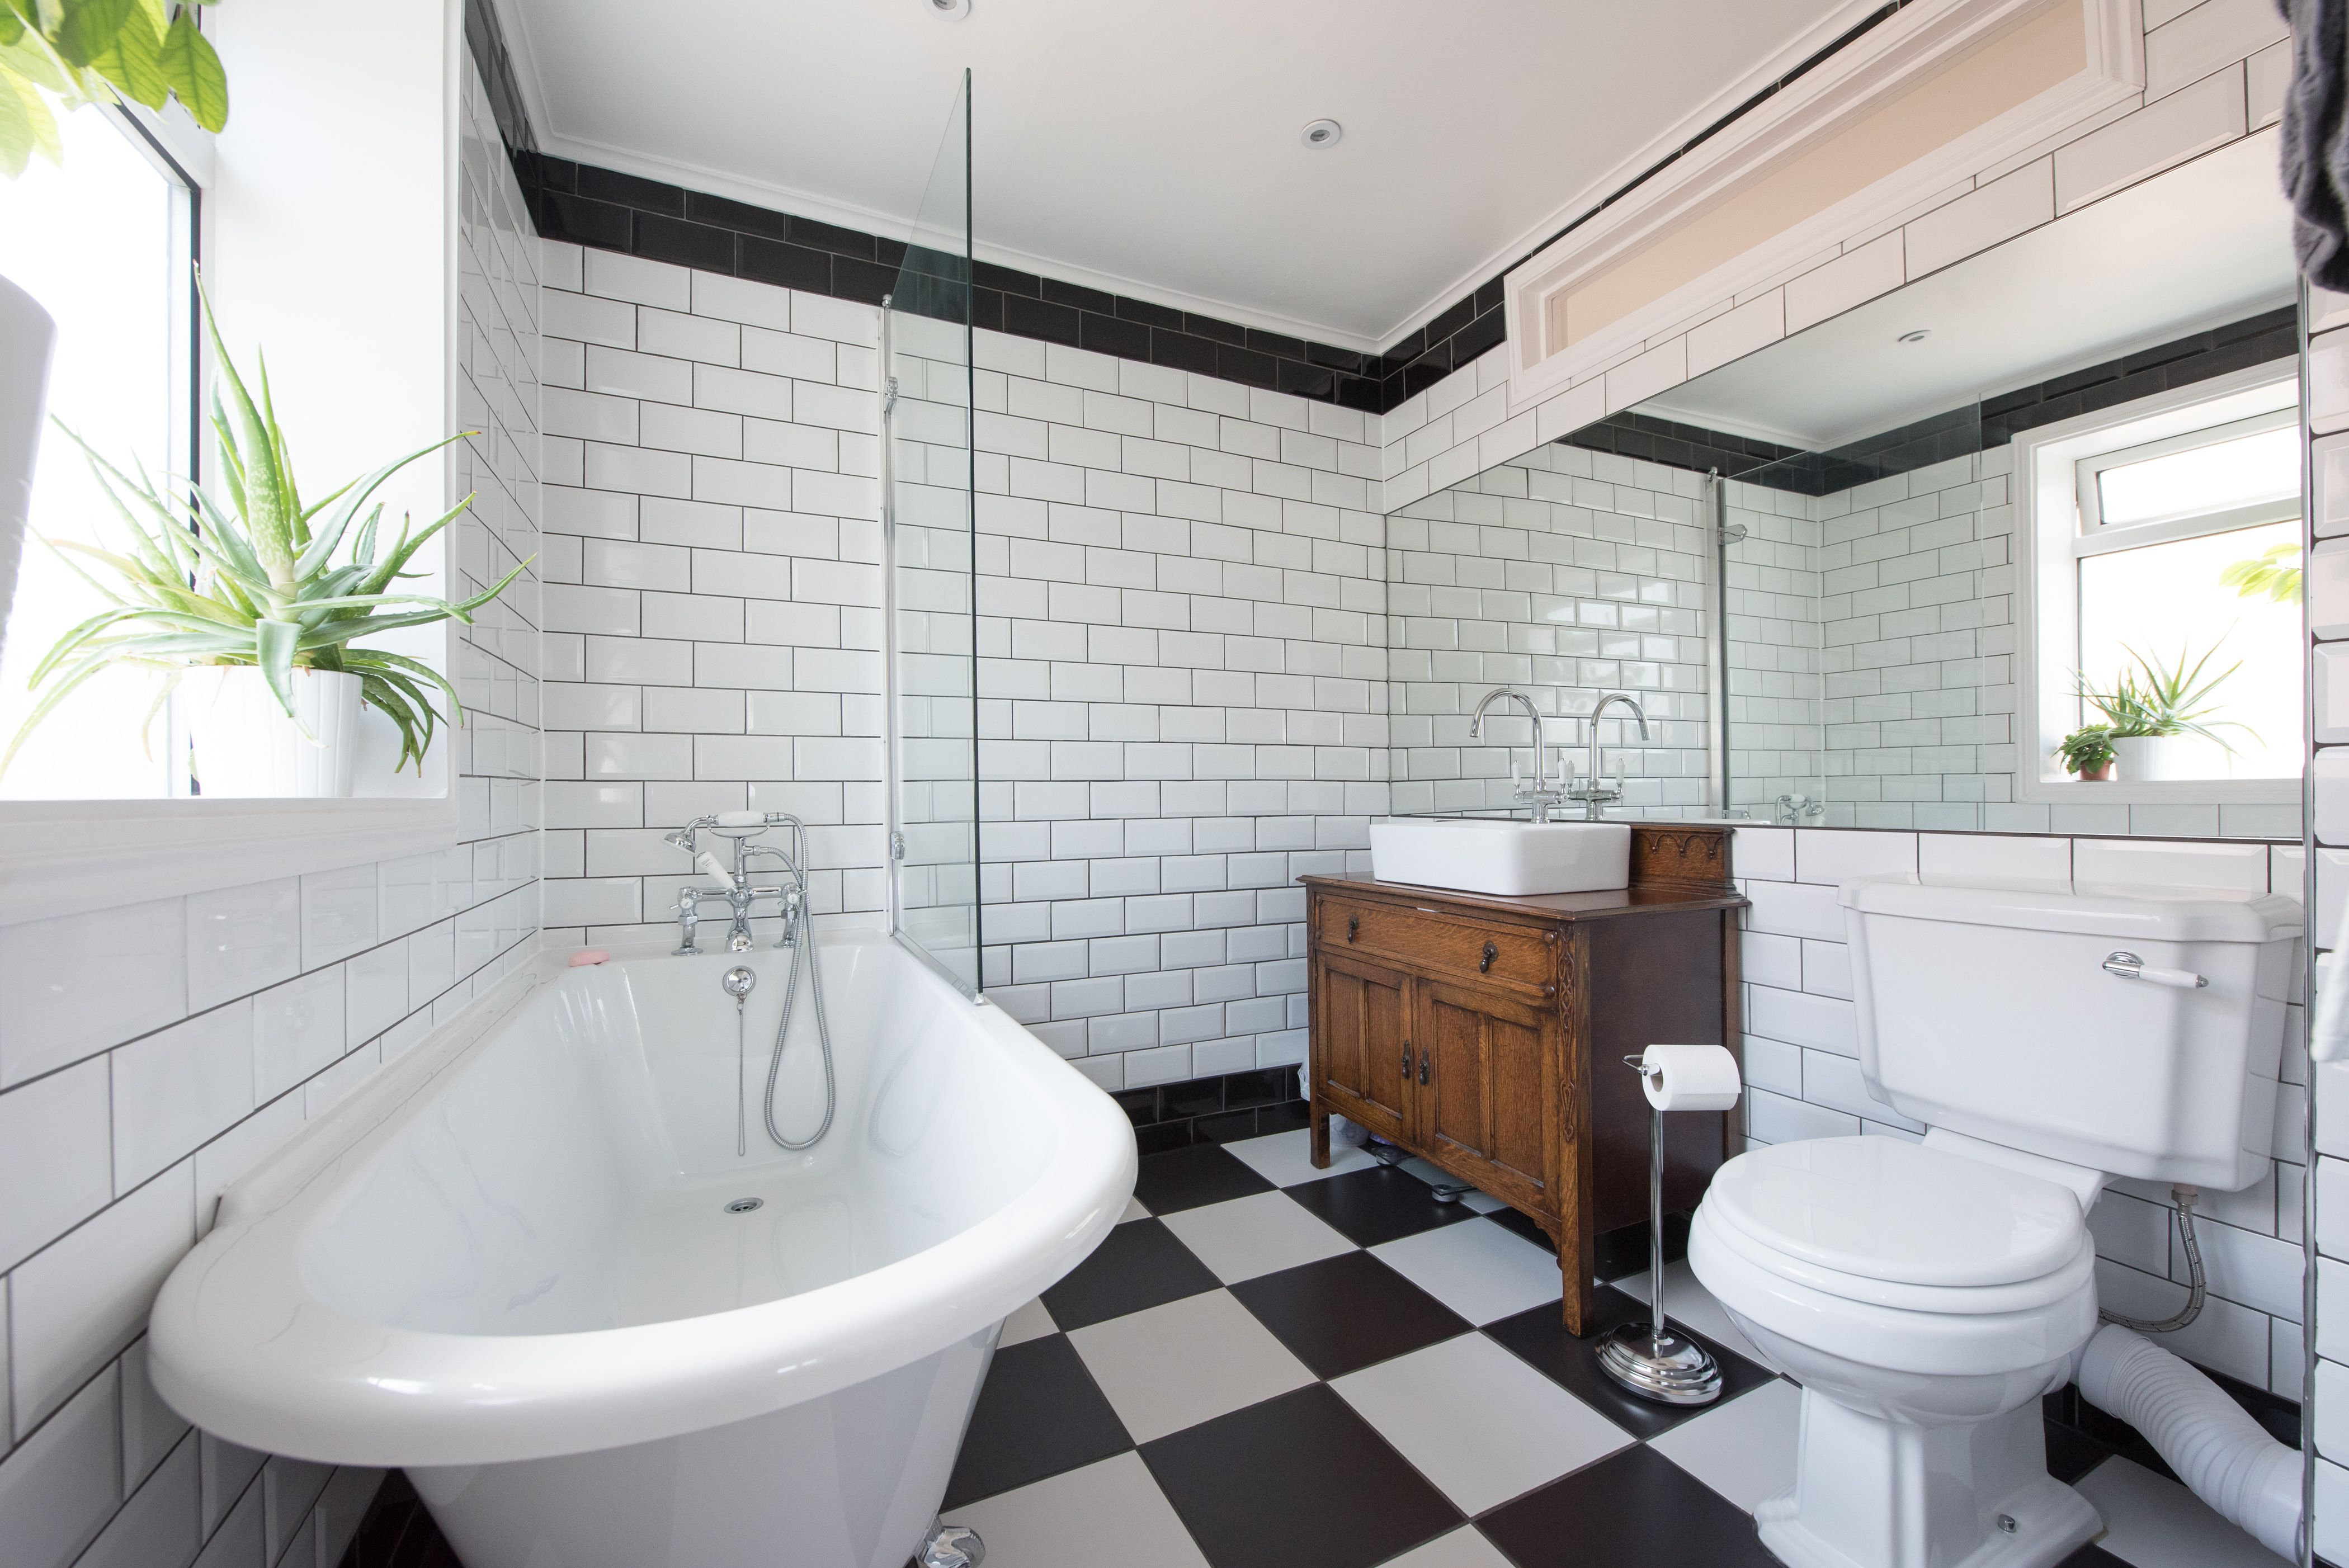 5 Great Plants For Your Green Bathroom